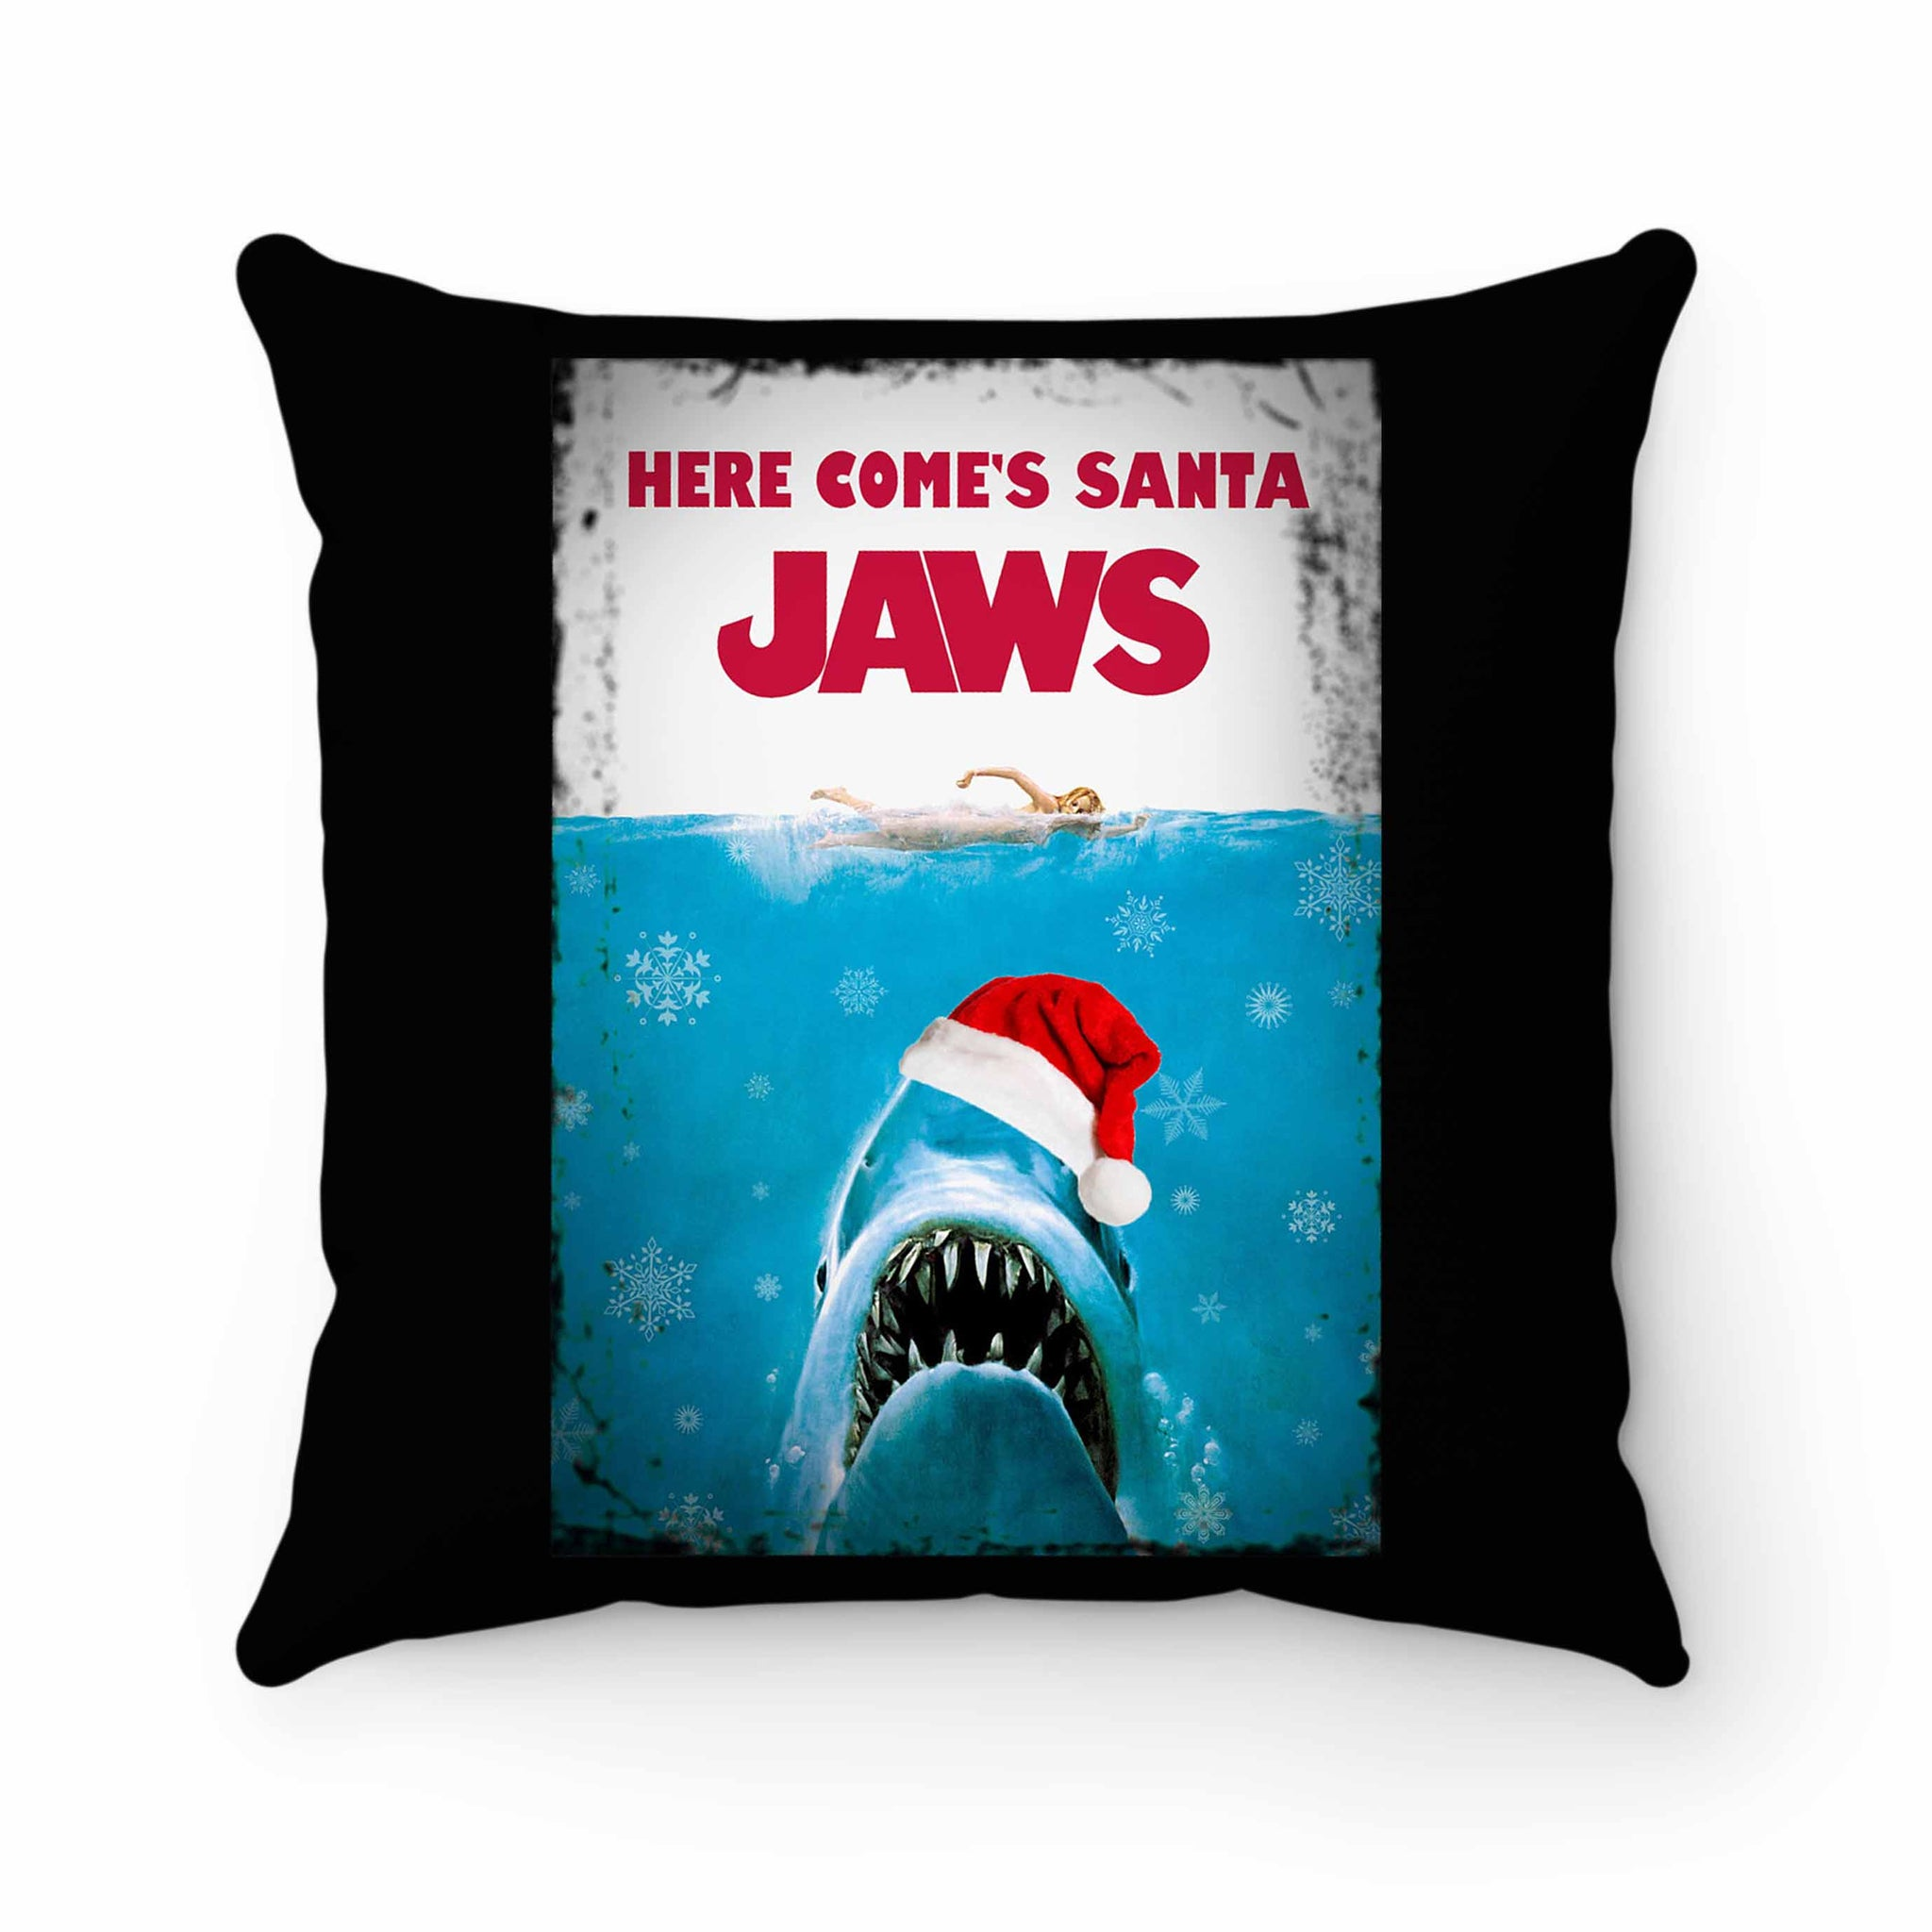 Santa Jaws Christmas 1 Pillow Case Cover